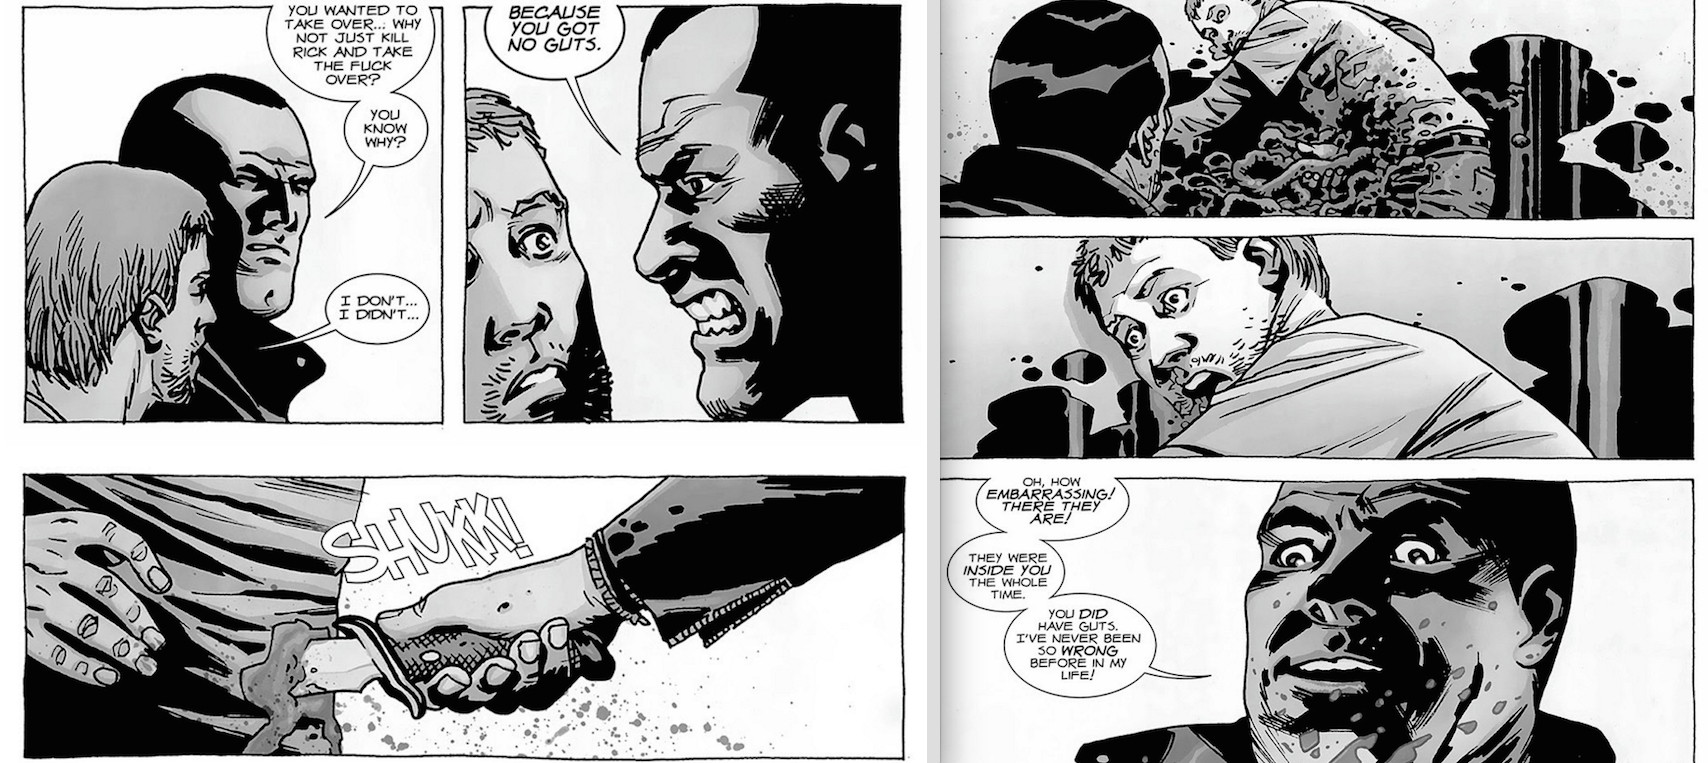 The Walking Dead - Negan Hates Cowards.